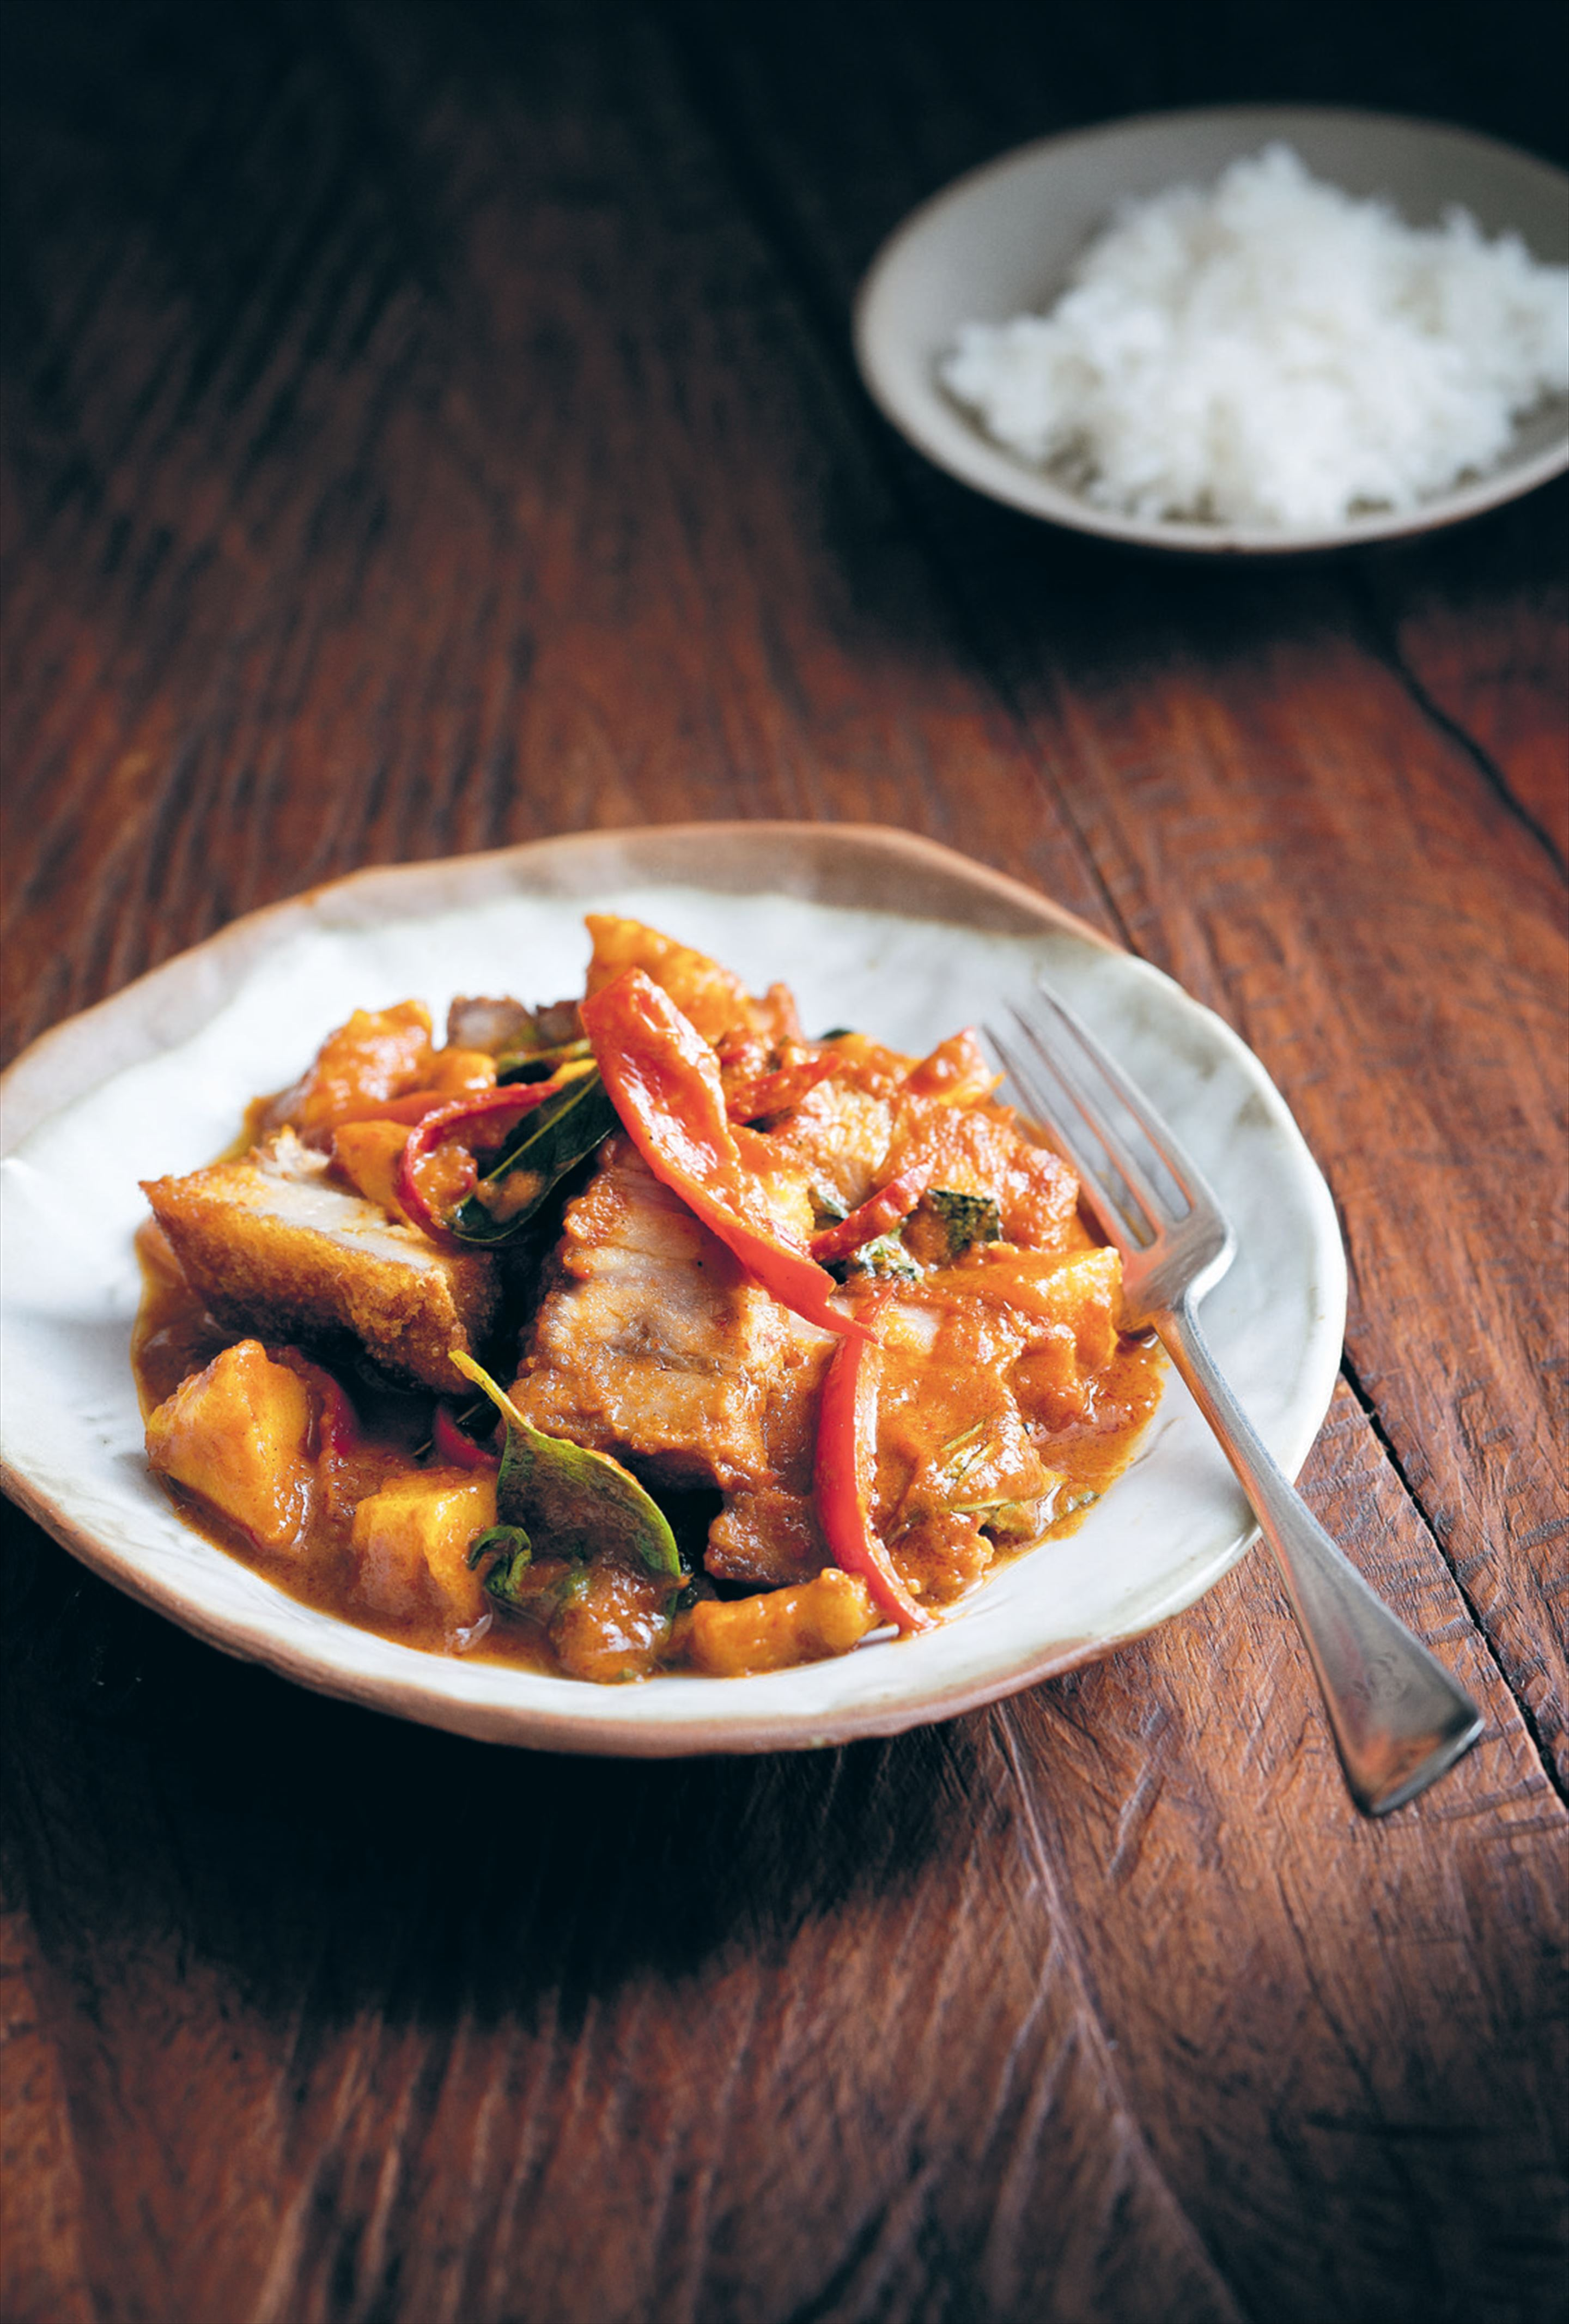 Pineapple curry of crisp belly pork